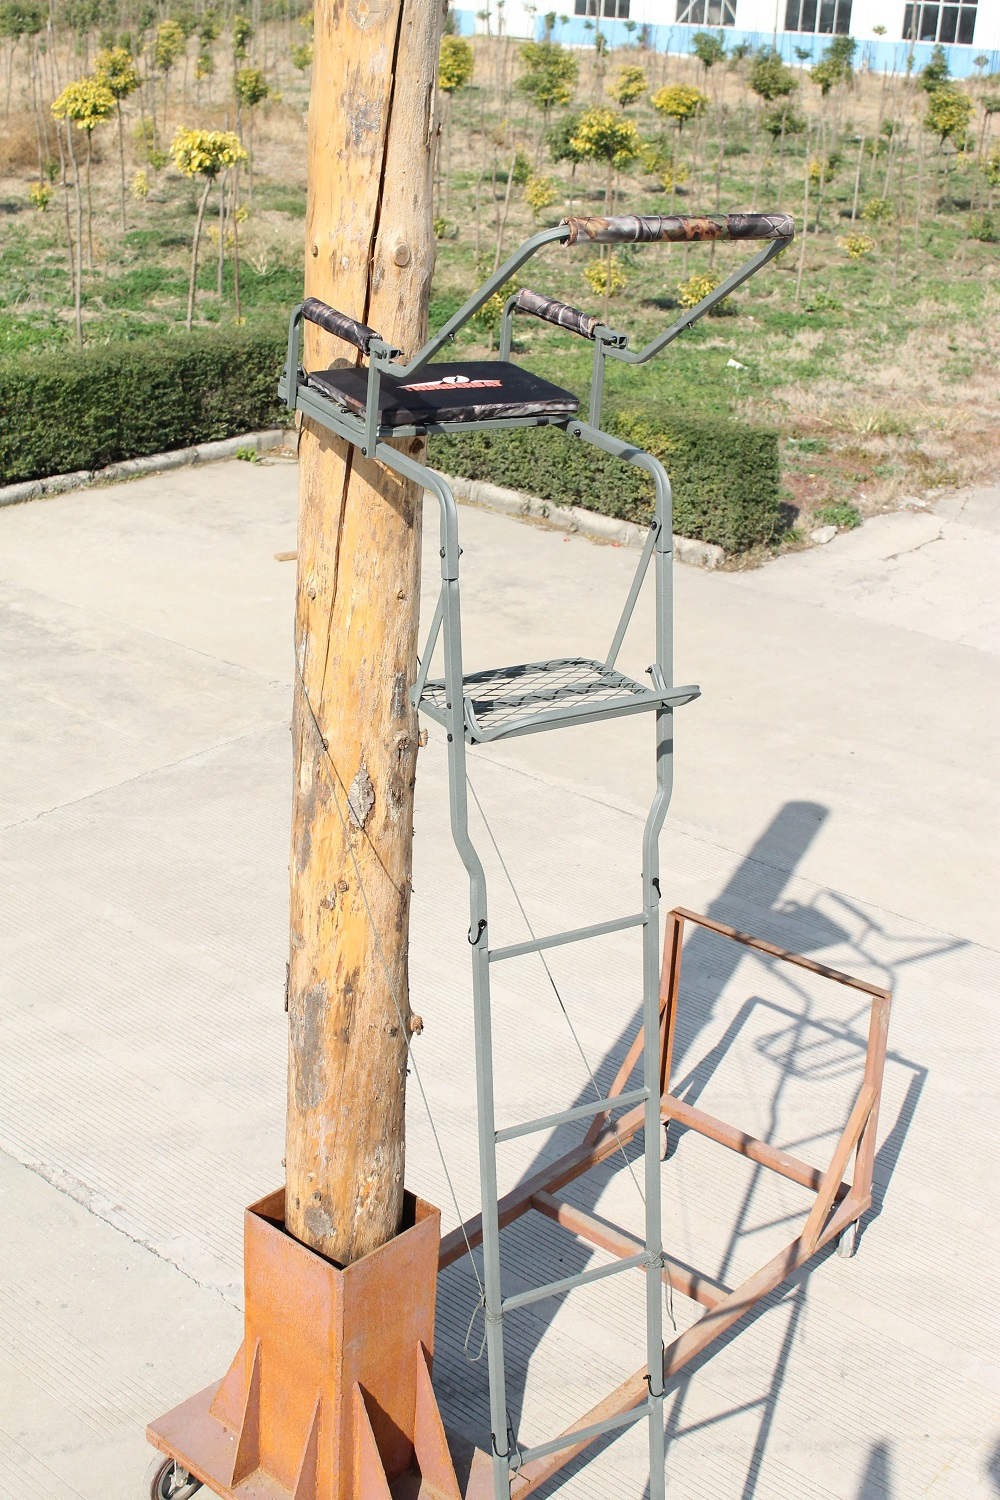 Ts006 16 5 39 one person ladder tree stands folding buy for One person tree stand